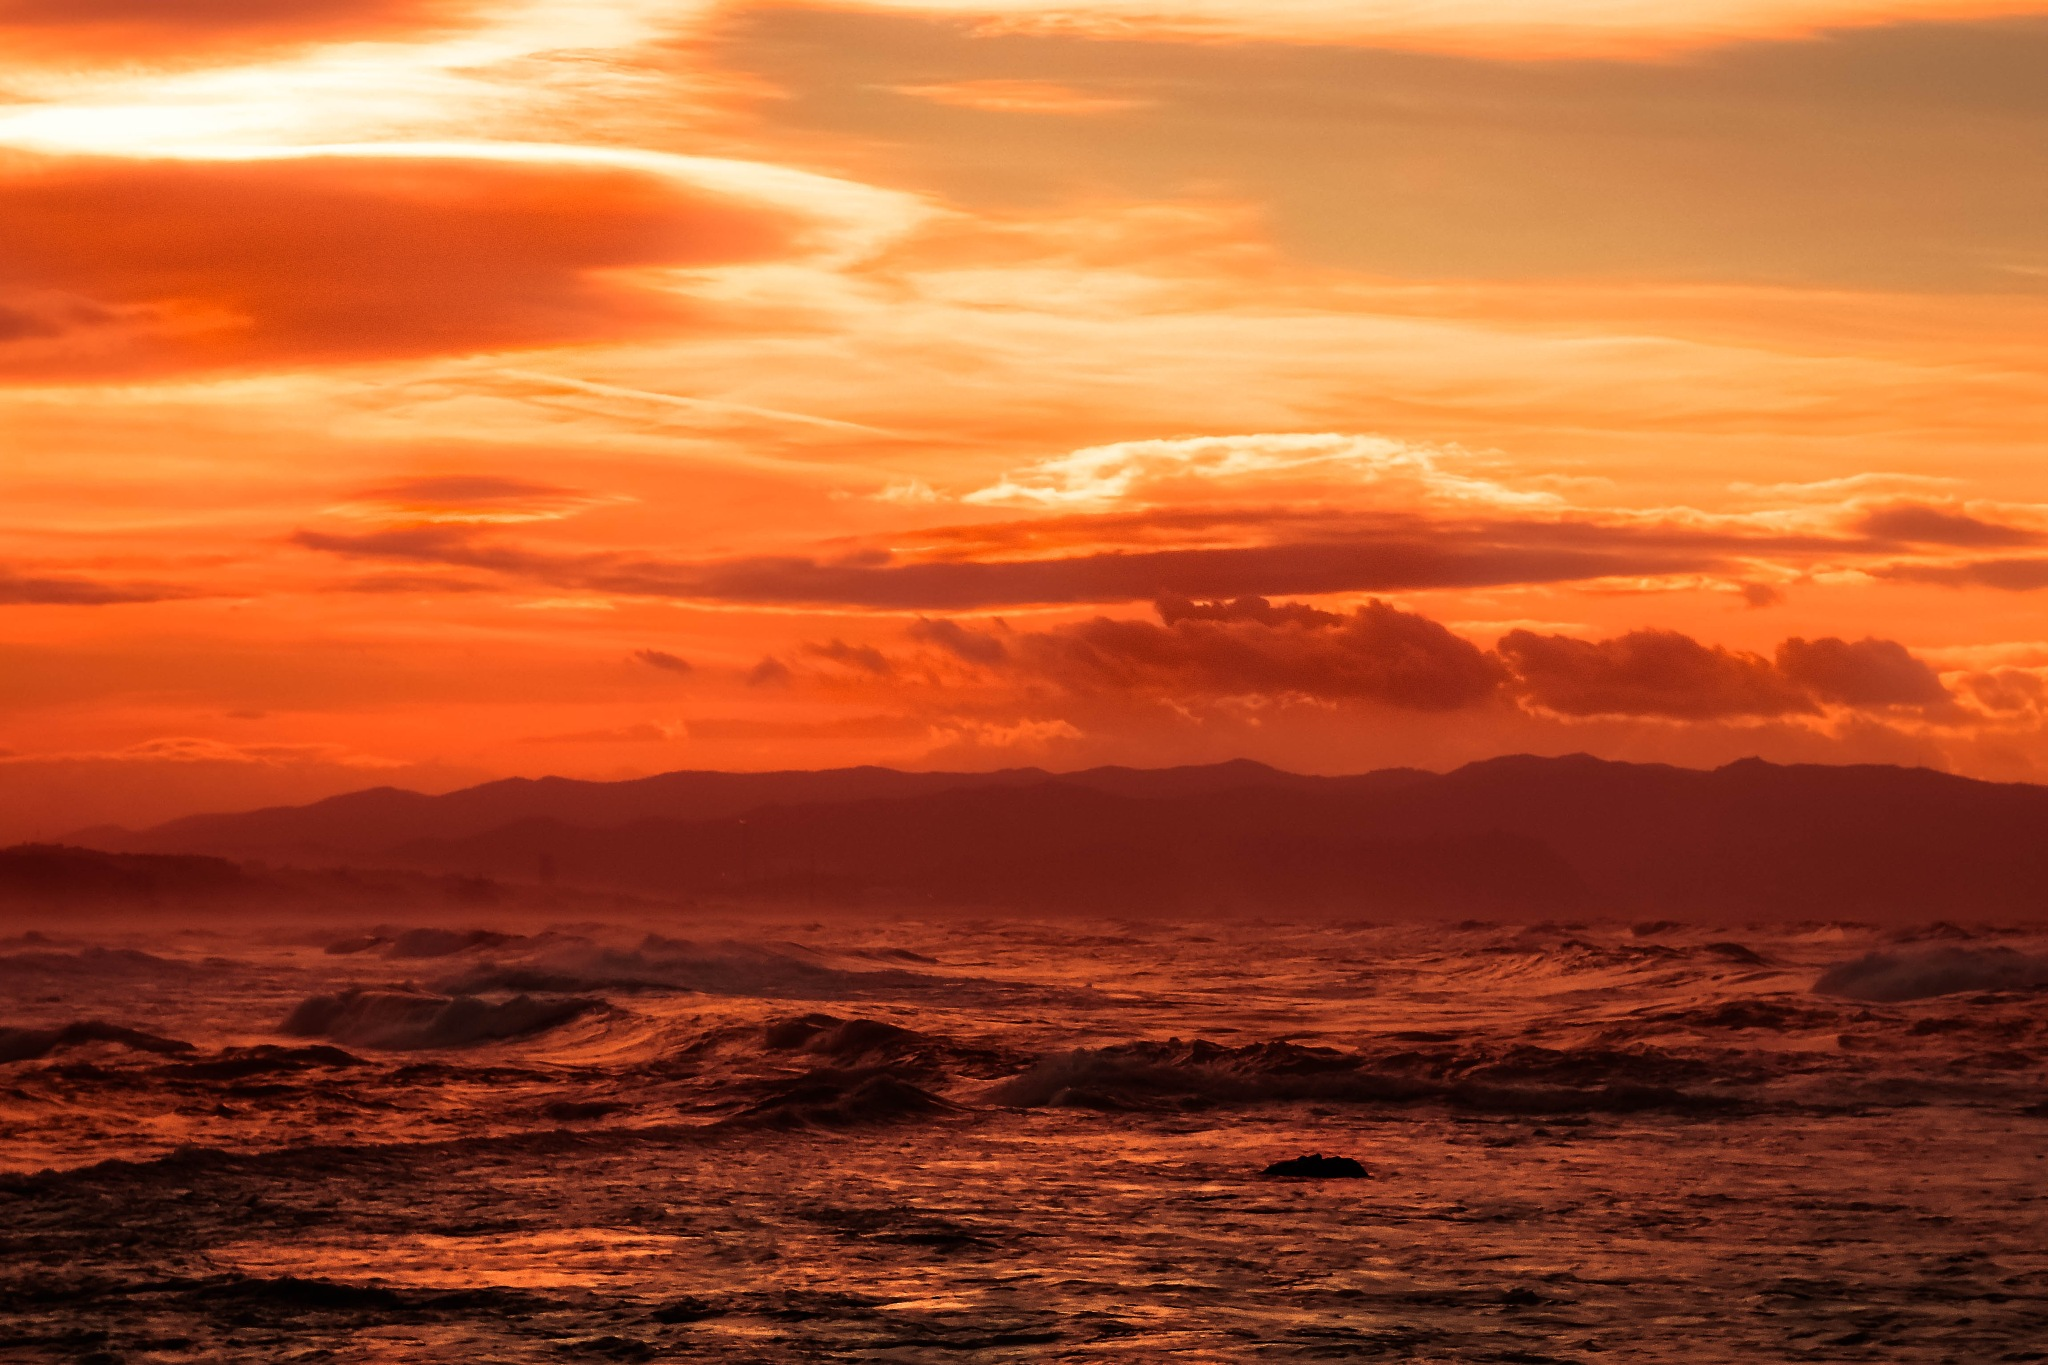 Orange sunset by Wounded Man